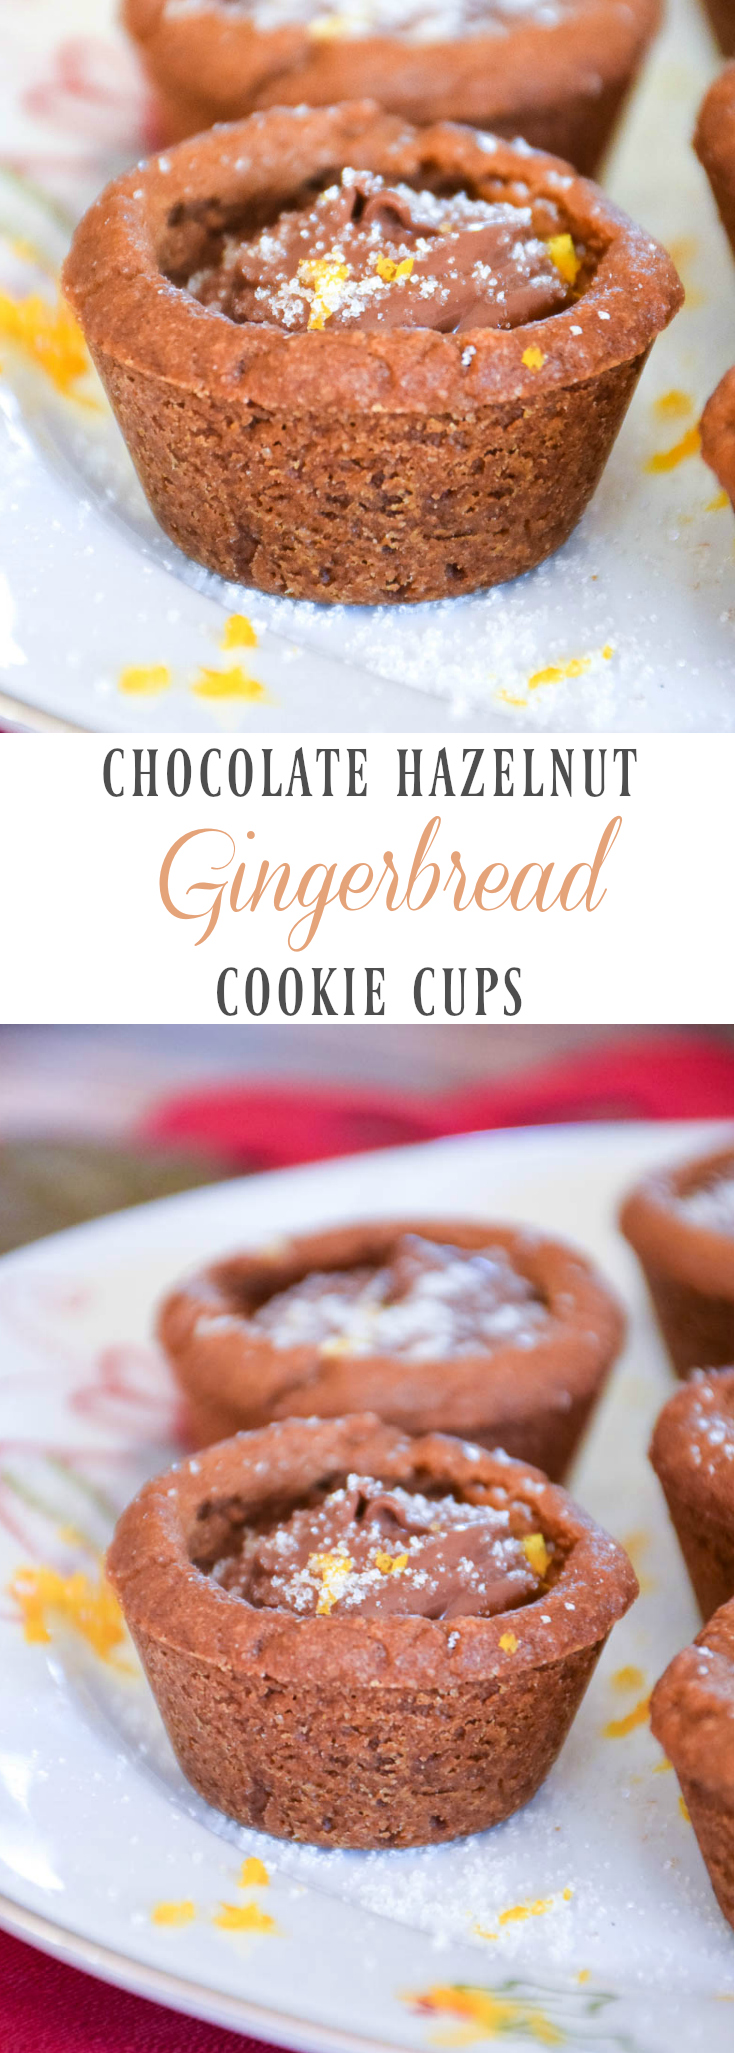 Chocolate Hazelnut Gingerbread Cookie Cups - Grumpy's Honey Bunch